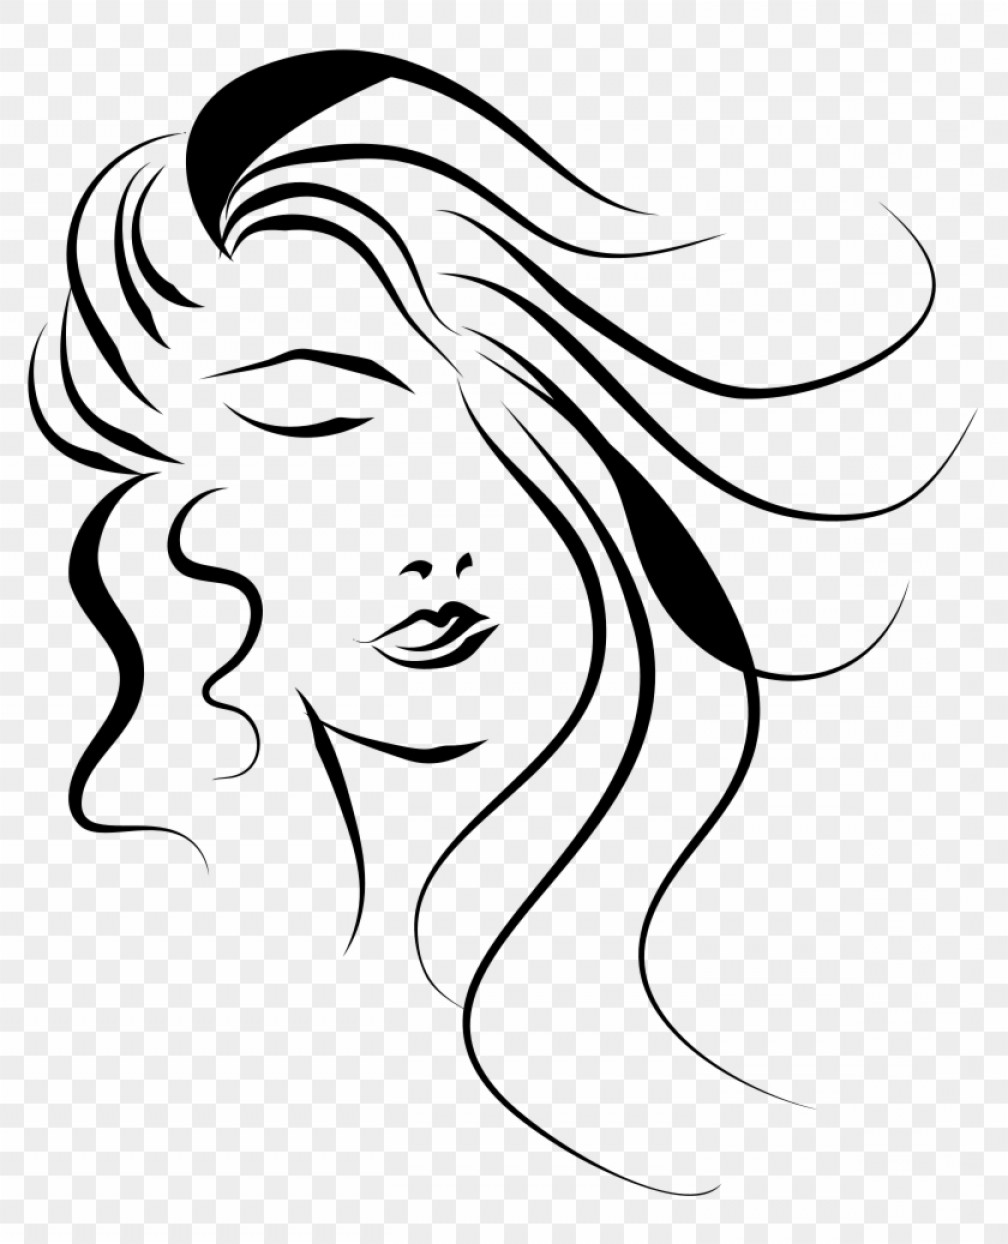 Mhhdbznnwomans Face Line Art Vector Woman Face Png.